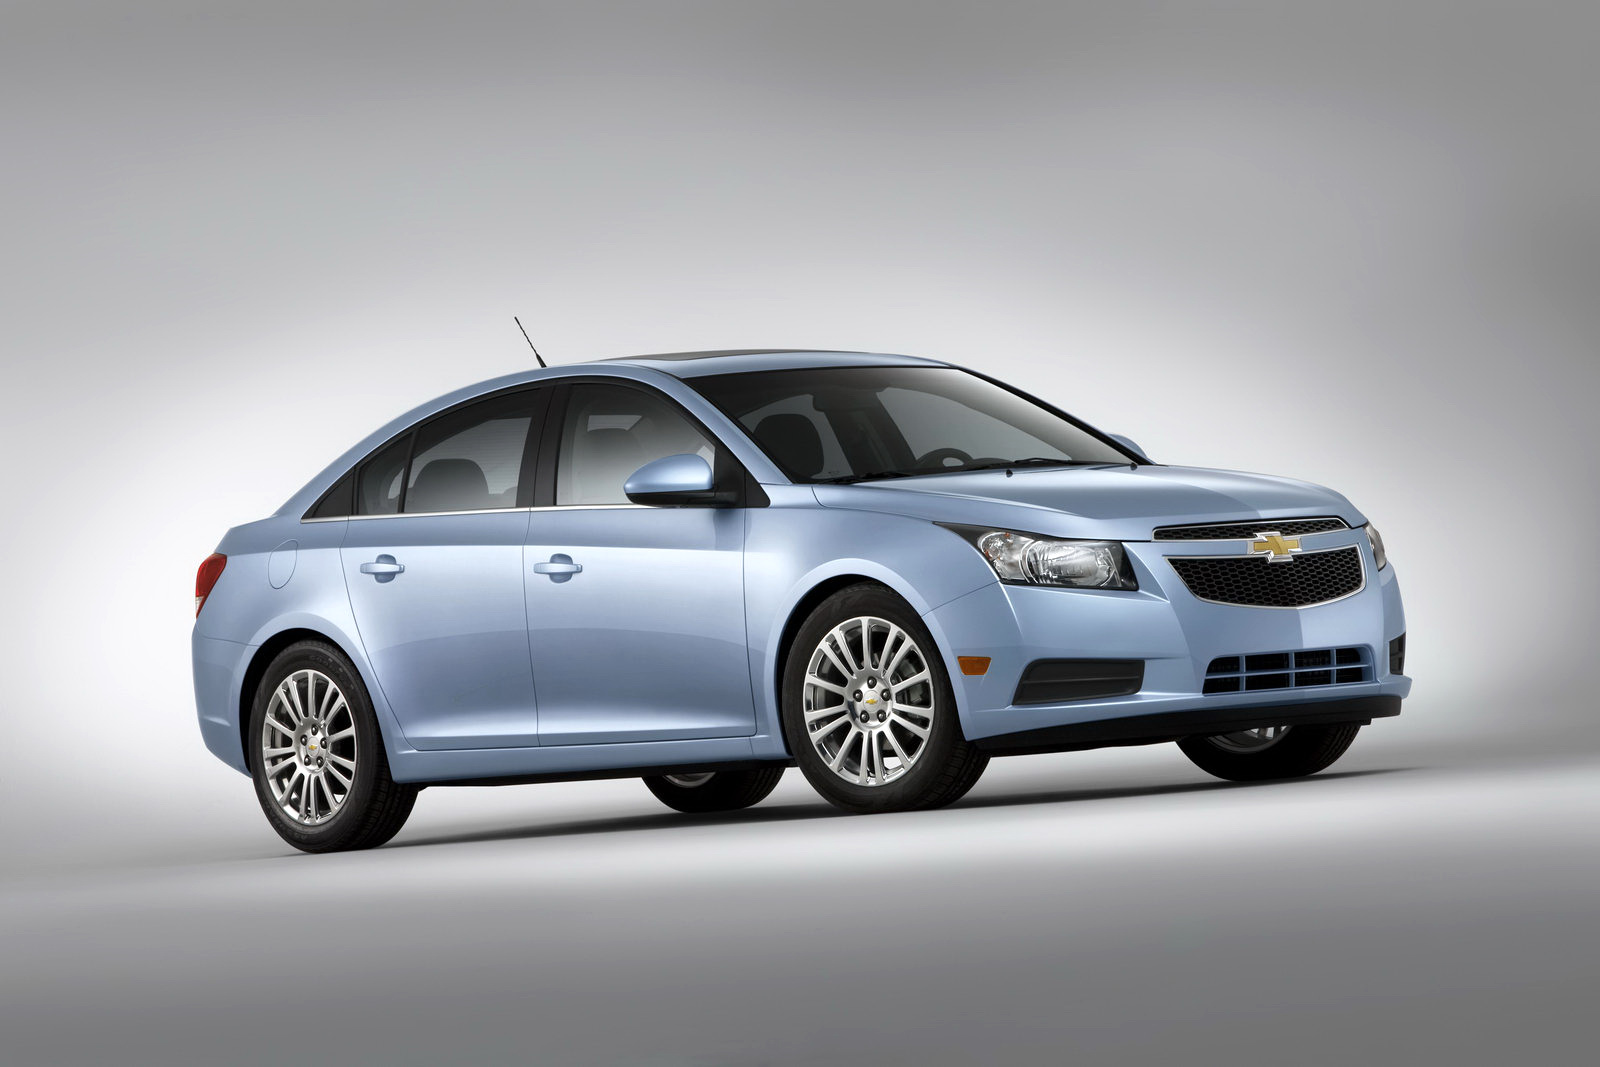 2011 Chevrolet Cruze The Car Club